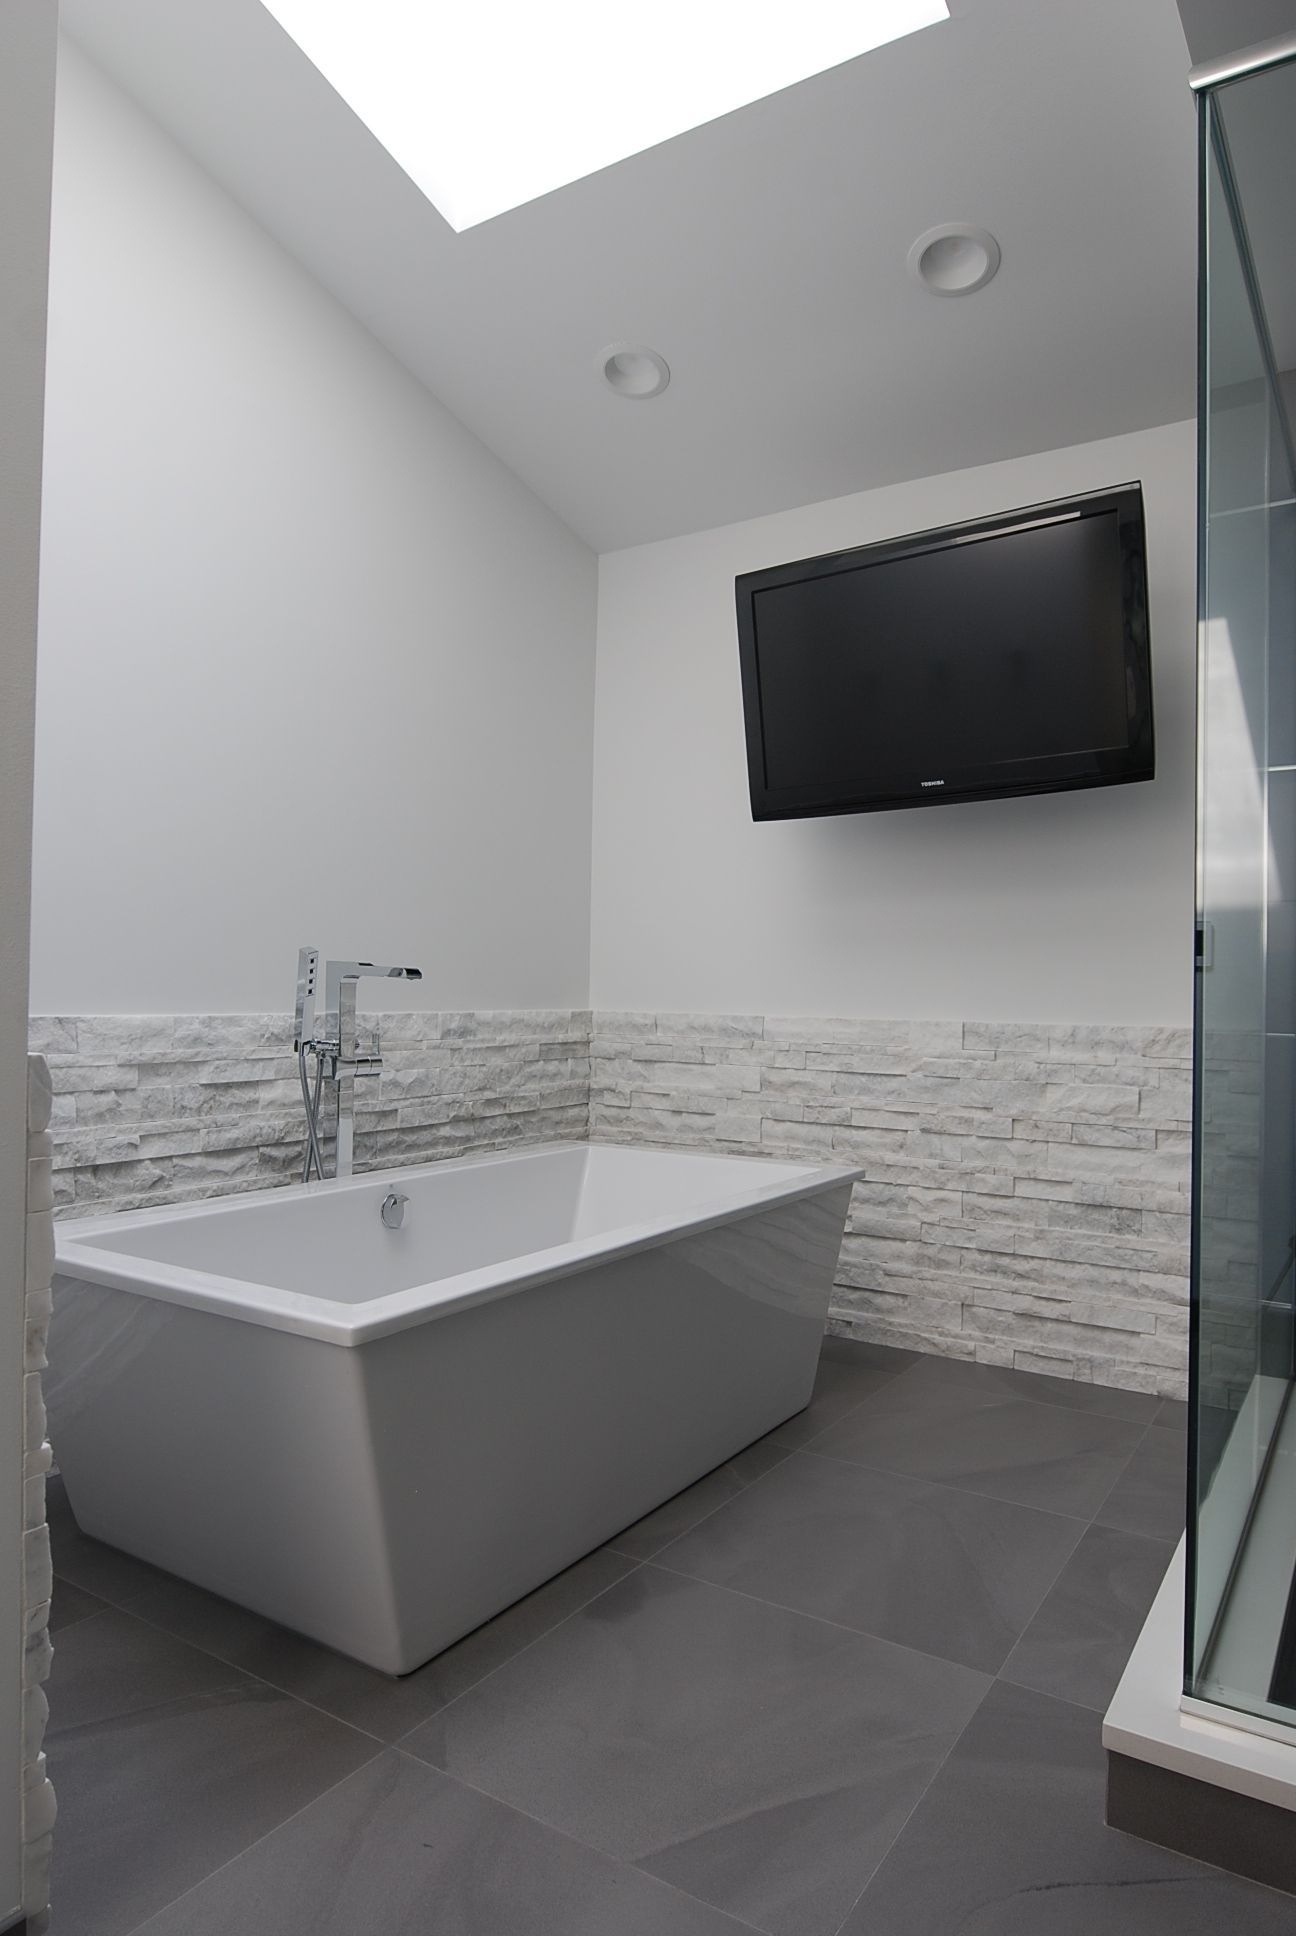 Free Standing Tub With Tv Mounted On Wall Grey White Contemporary Bathroom Modern Master Bathroom Wh Modern Master Bathroom Tv In Bathroom Master Bathroom